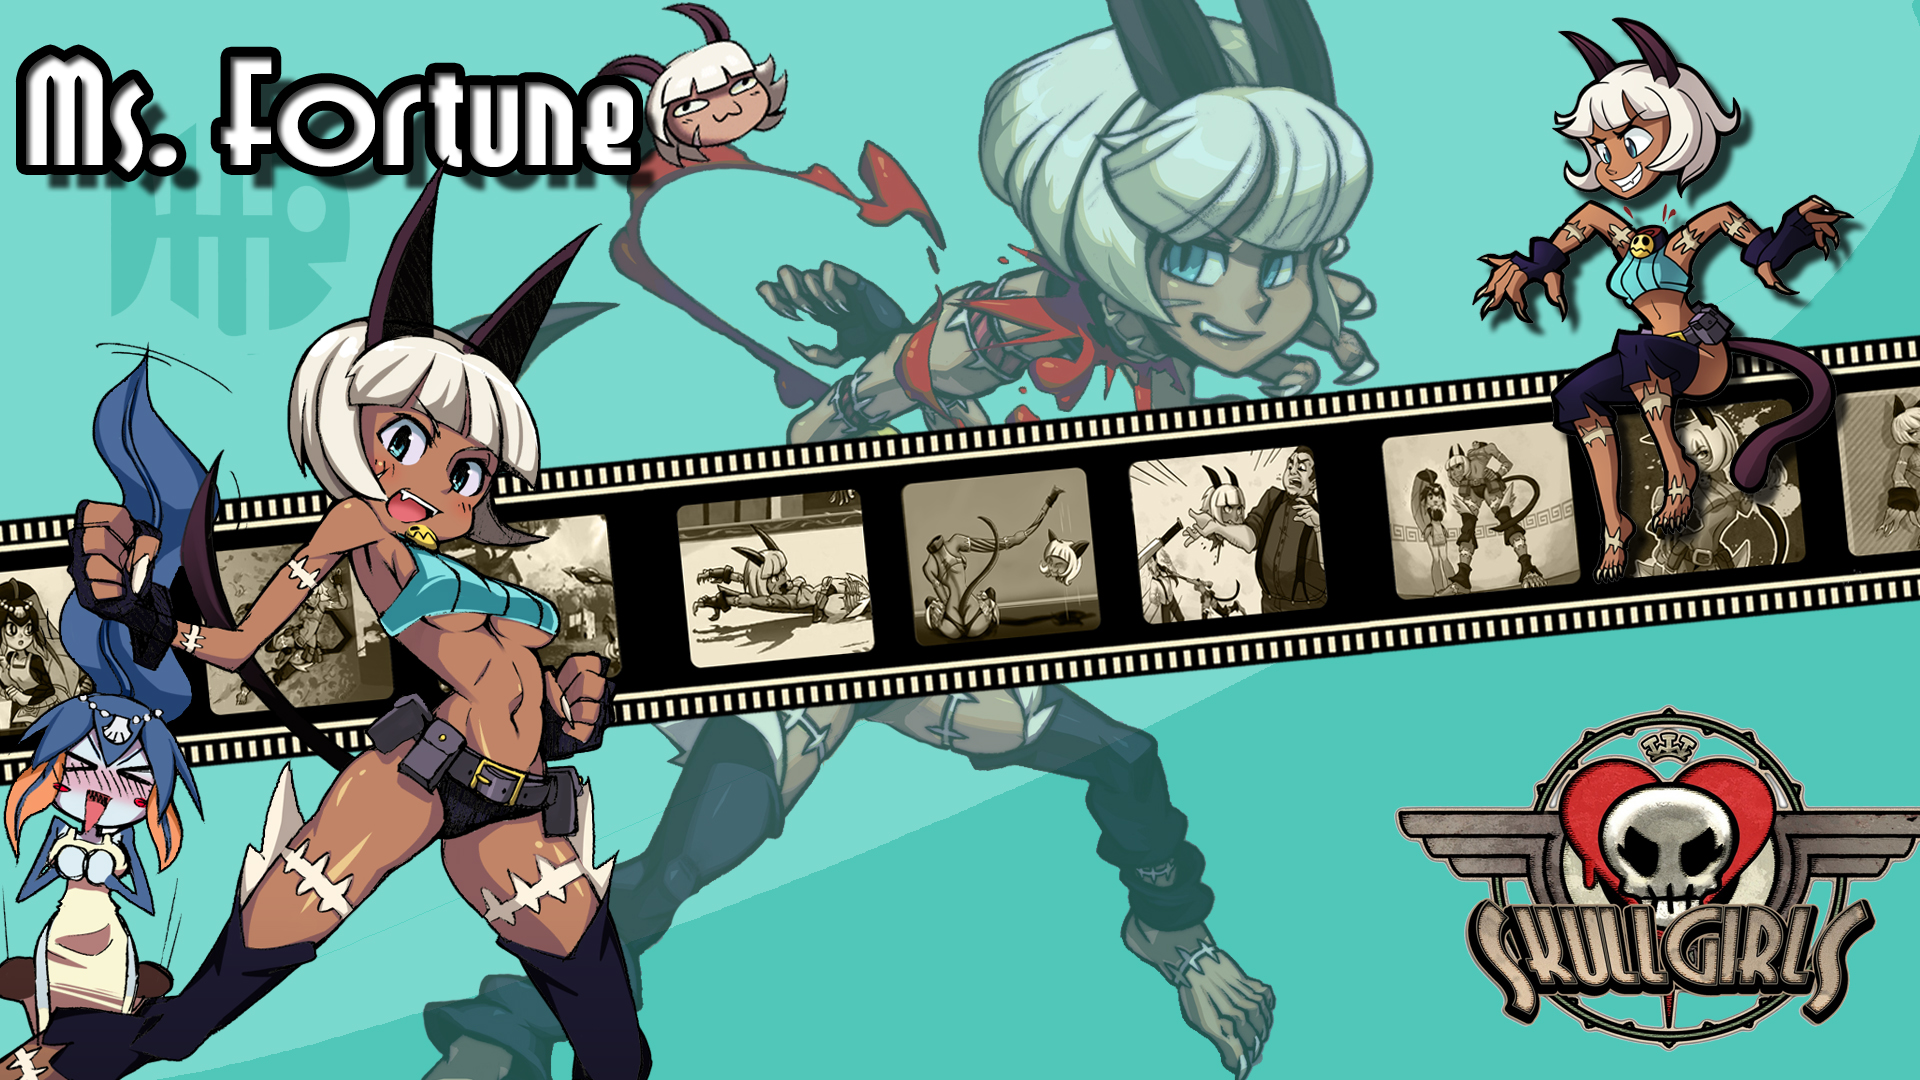 Skullgirls Ms Fortune Wallpaper By Ariff78 On Deviantart